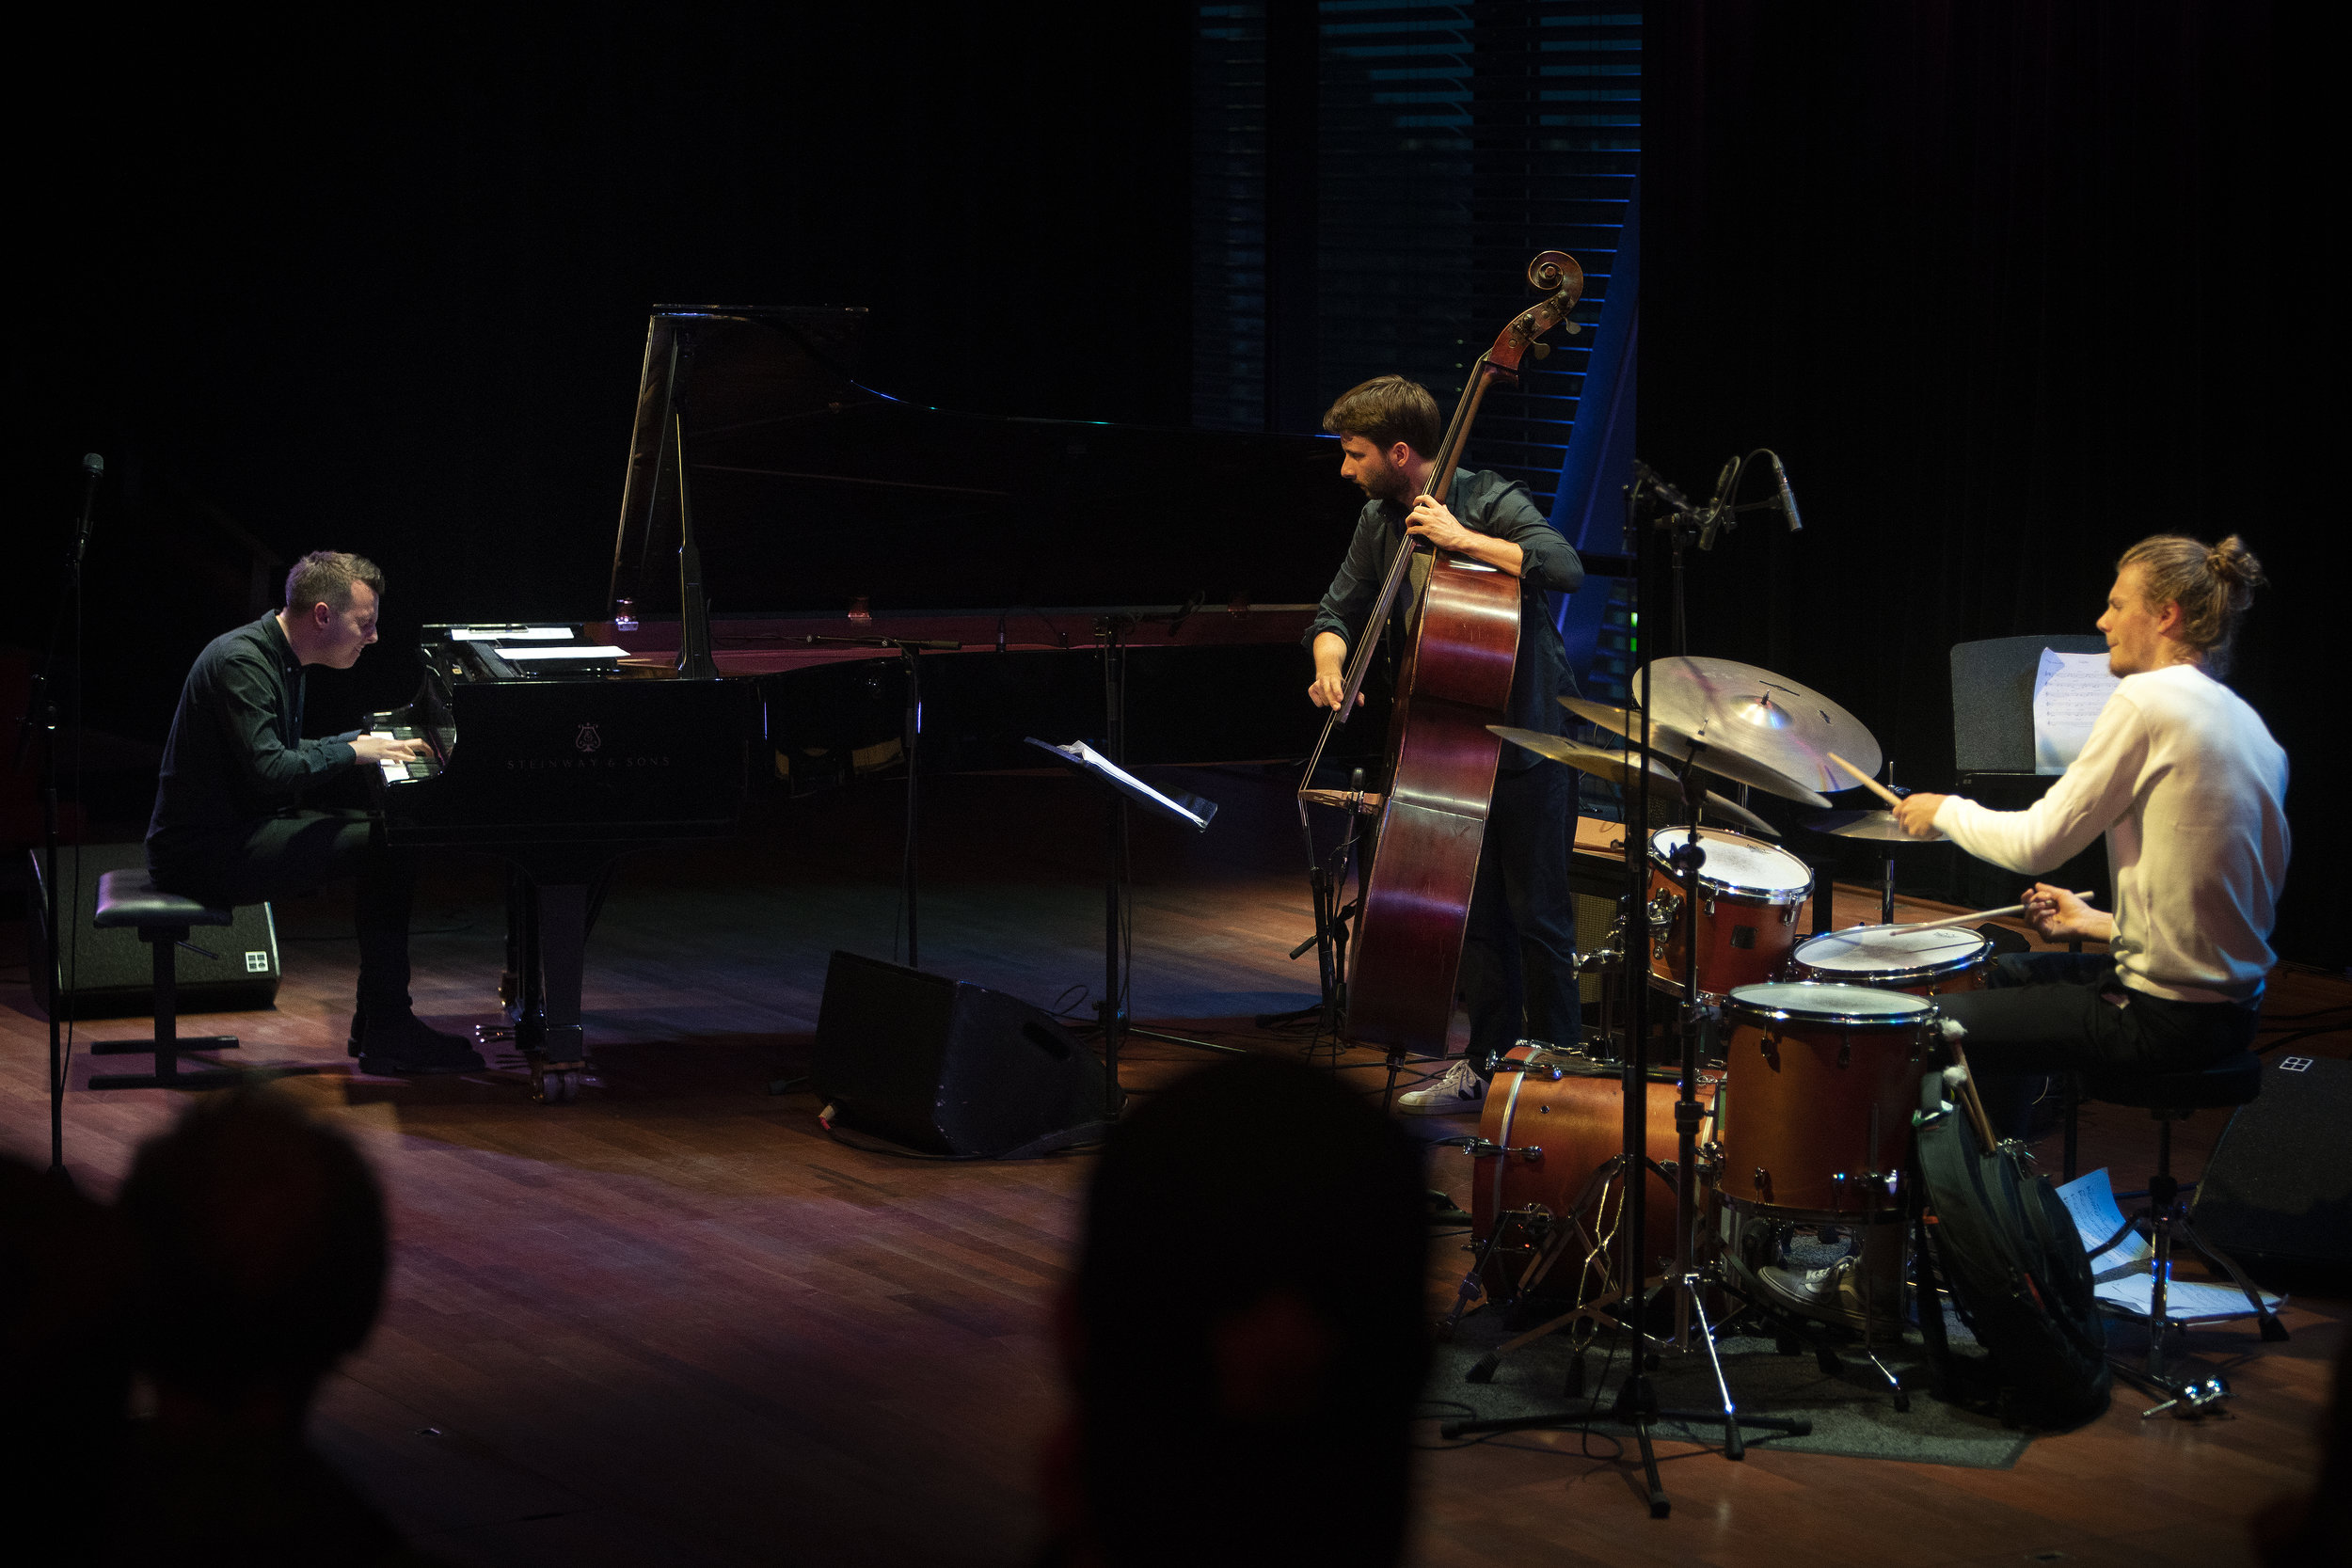 photo by Govert Driessen taken at the Bimhuis